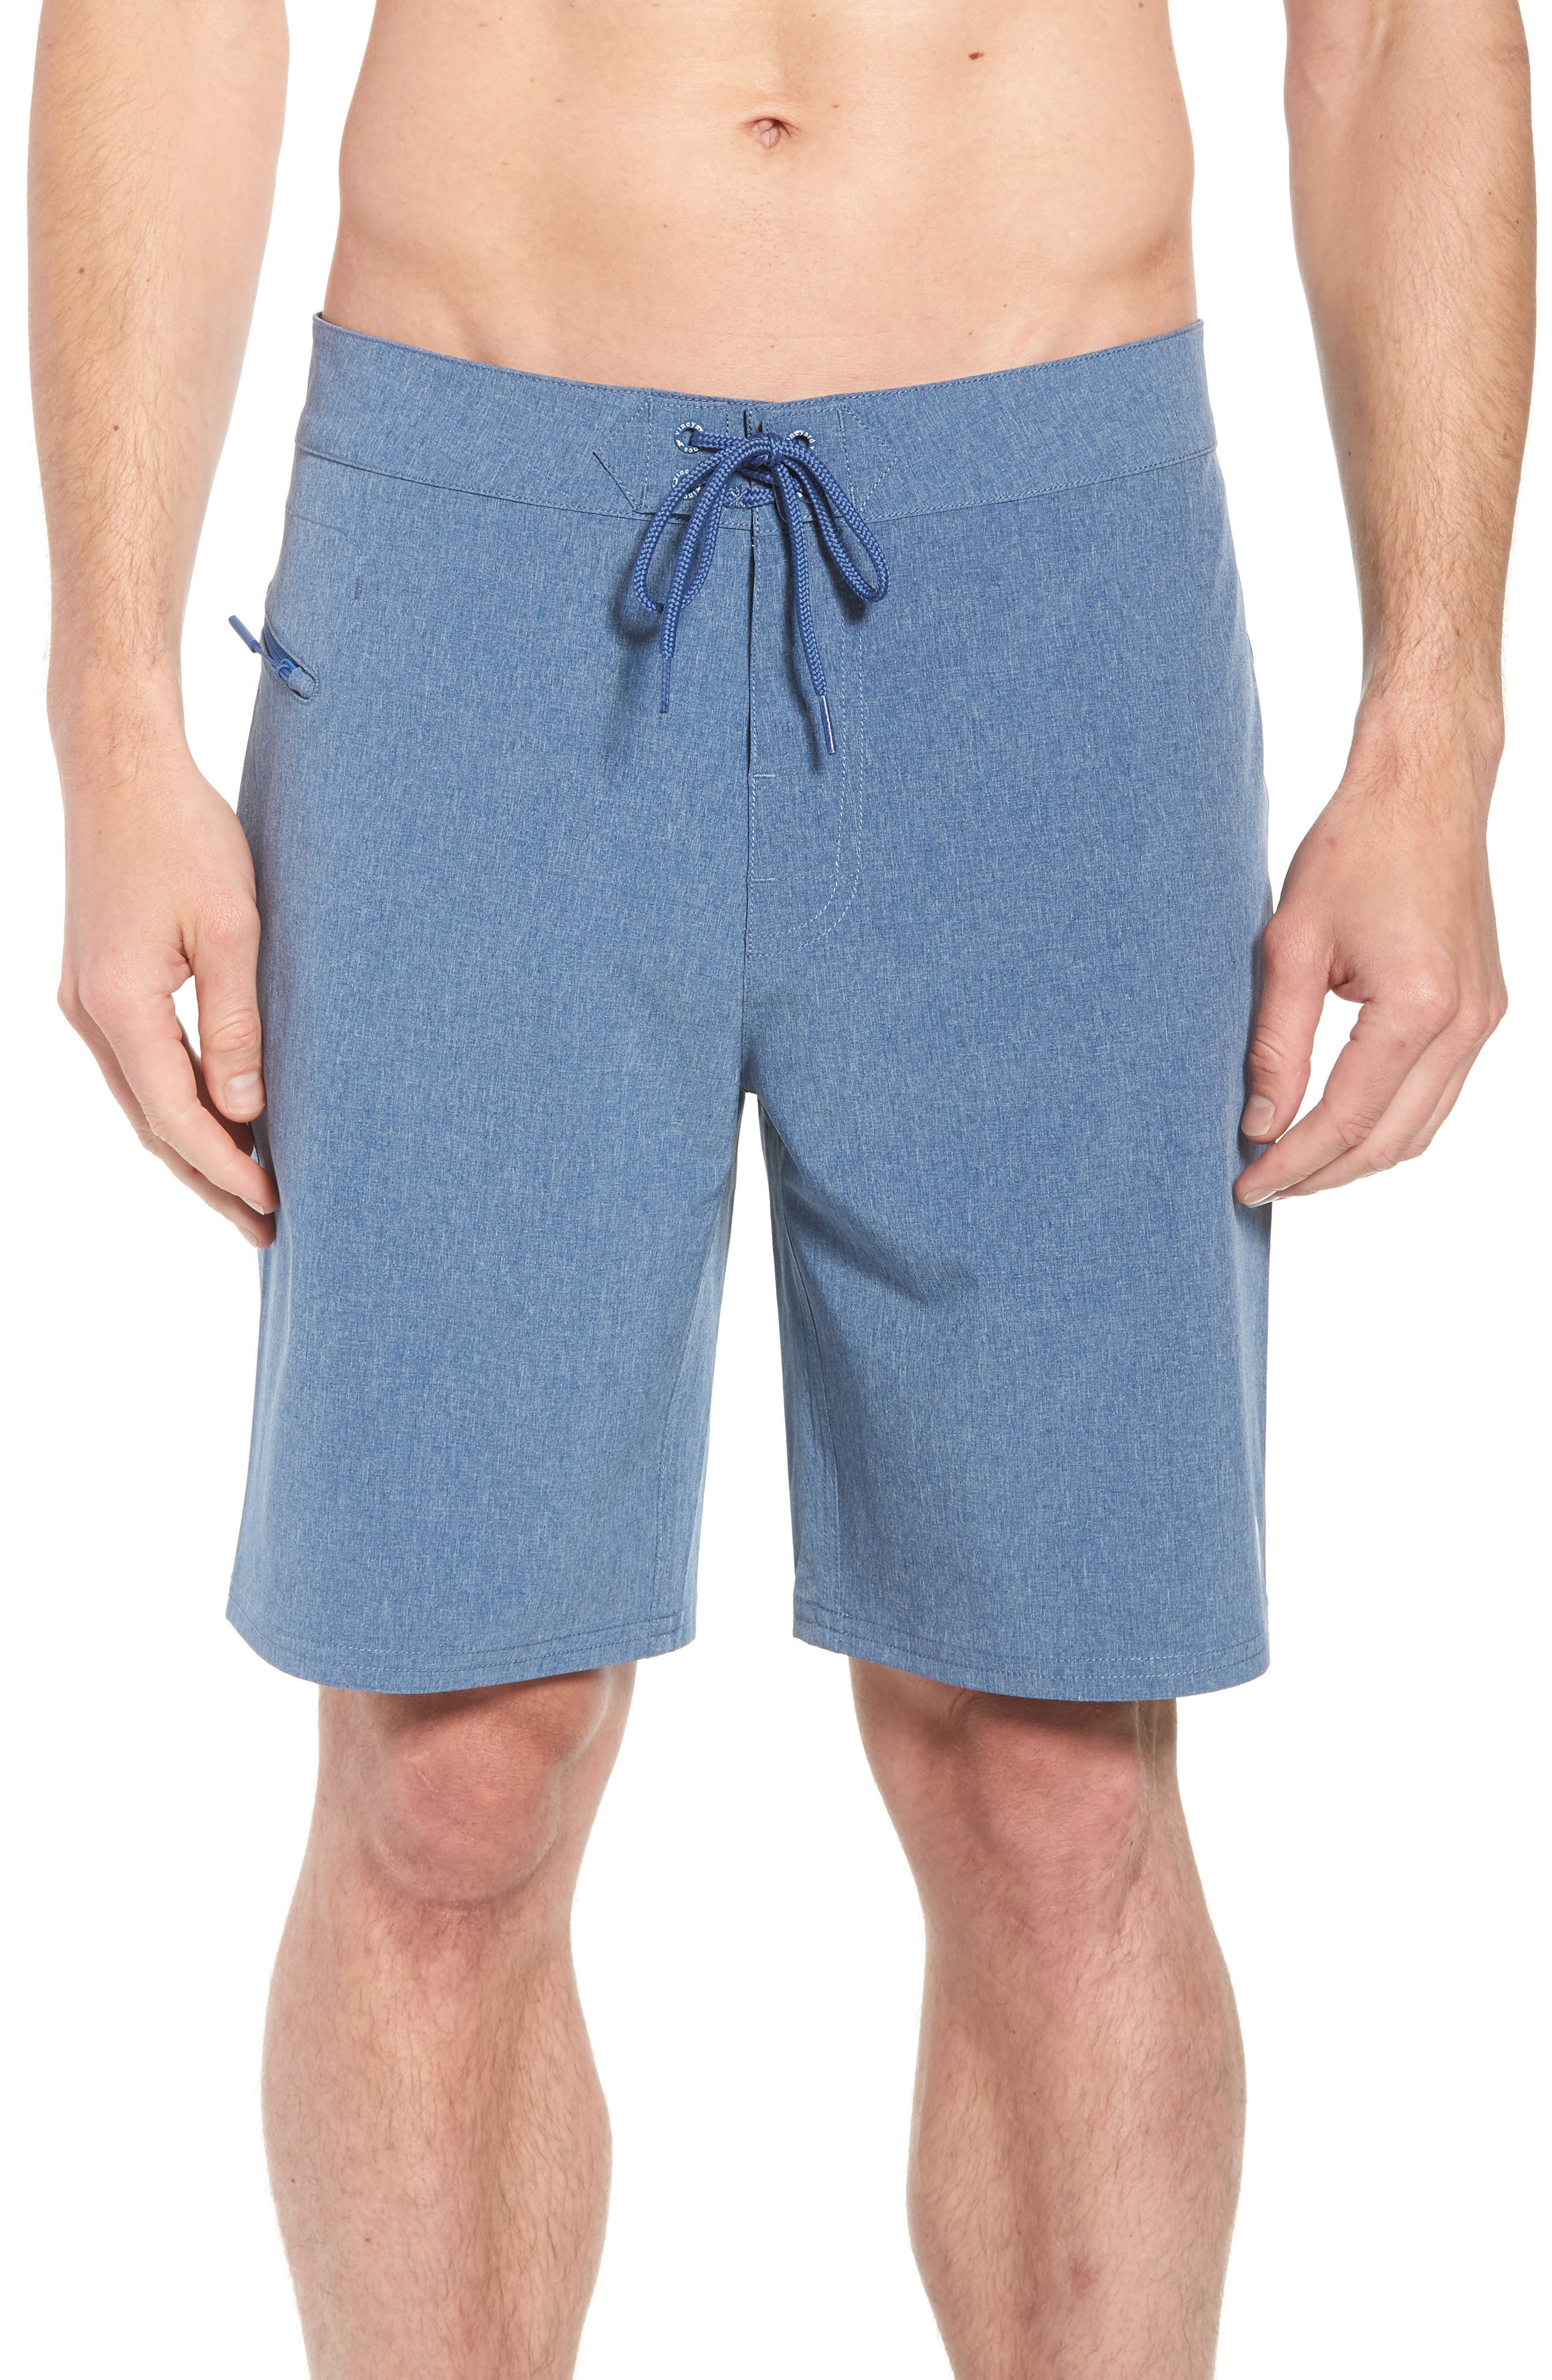 Heather Stretch Board Shorts,                         Main,                         color,